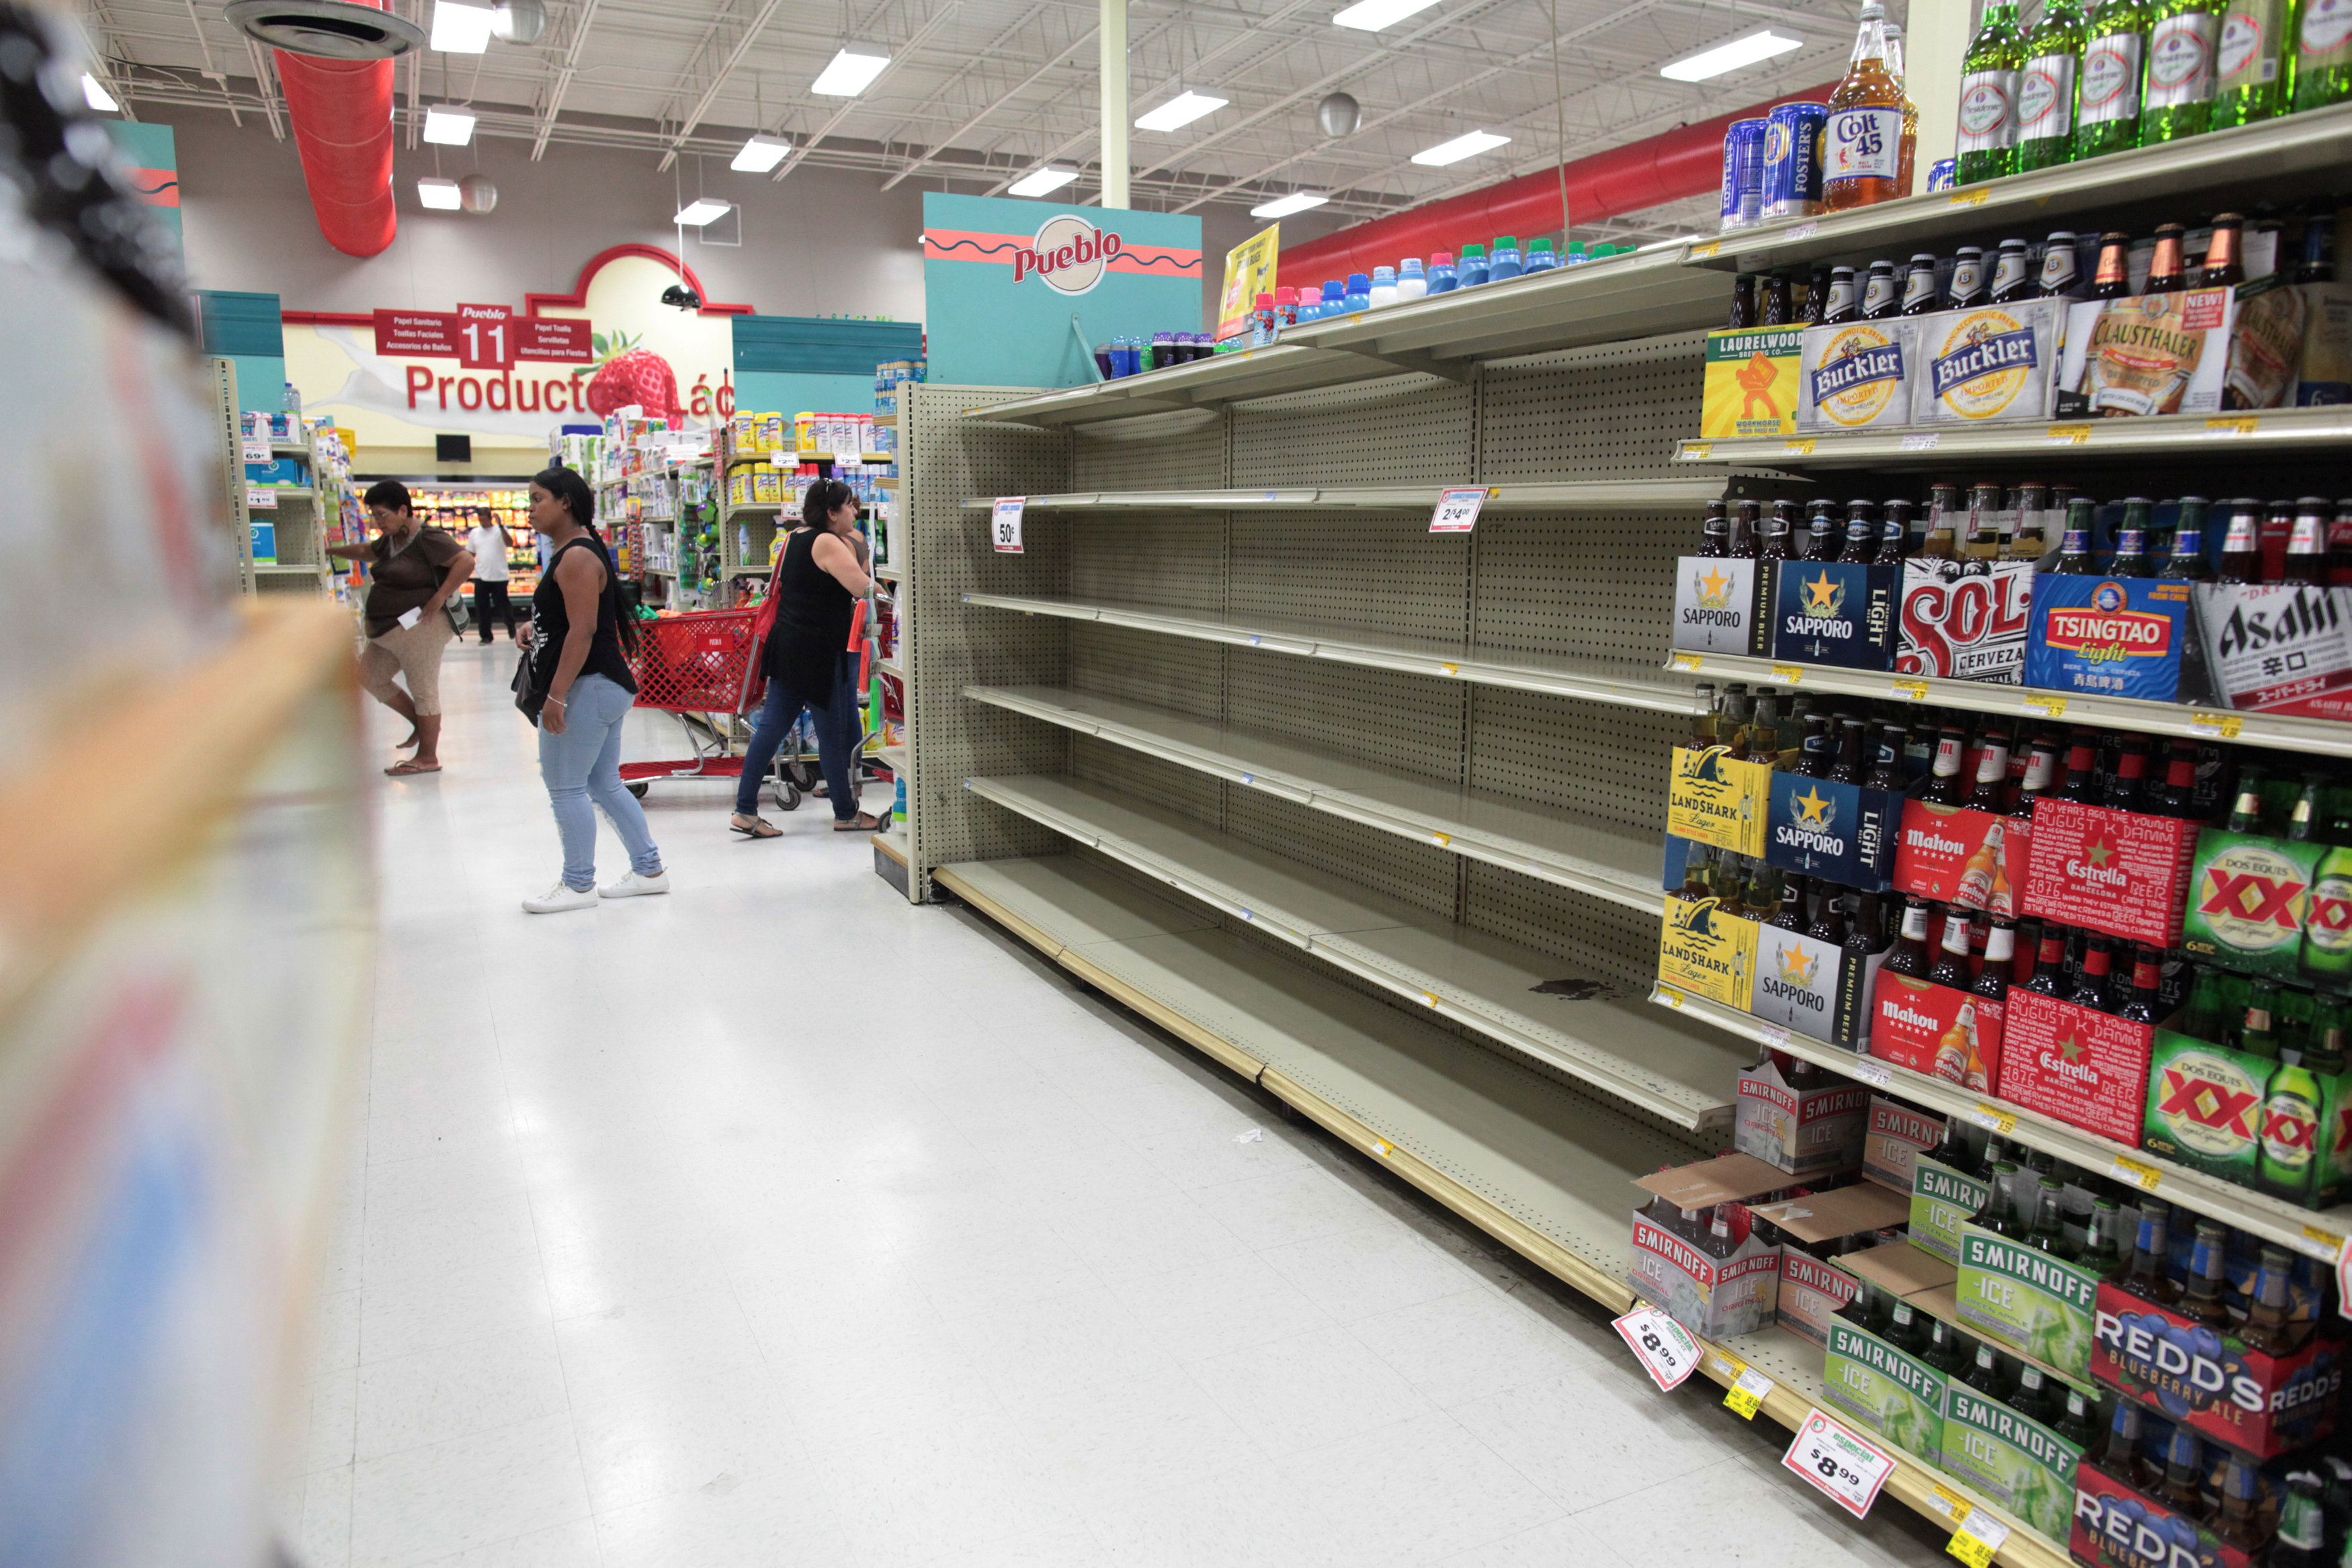 Customers walk near empty shelves that are normally filled with bottles of water after Puerto Rico Governor Ricardo Rossello declared a state of emergency in preparation for Hurricane Irma, in San Juan, Puerto Rico September 4, 2017. REUTERS/Alvin Baez